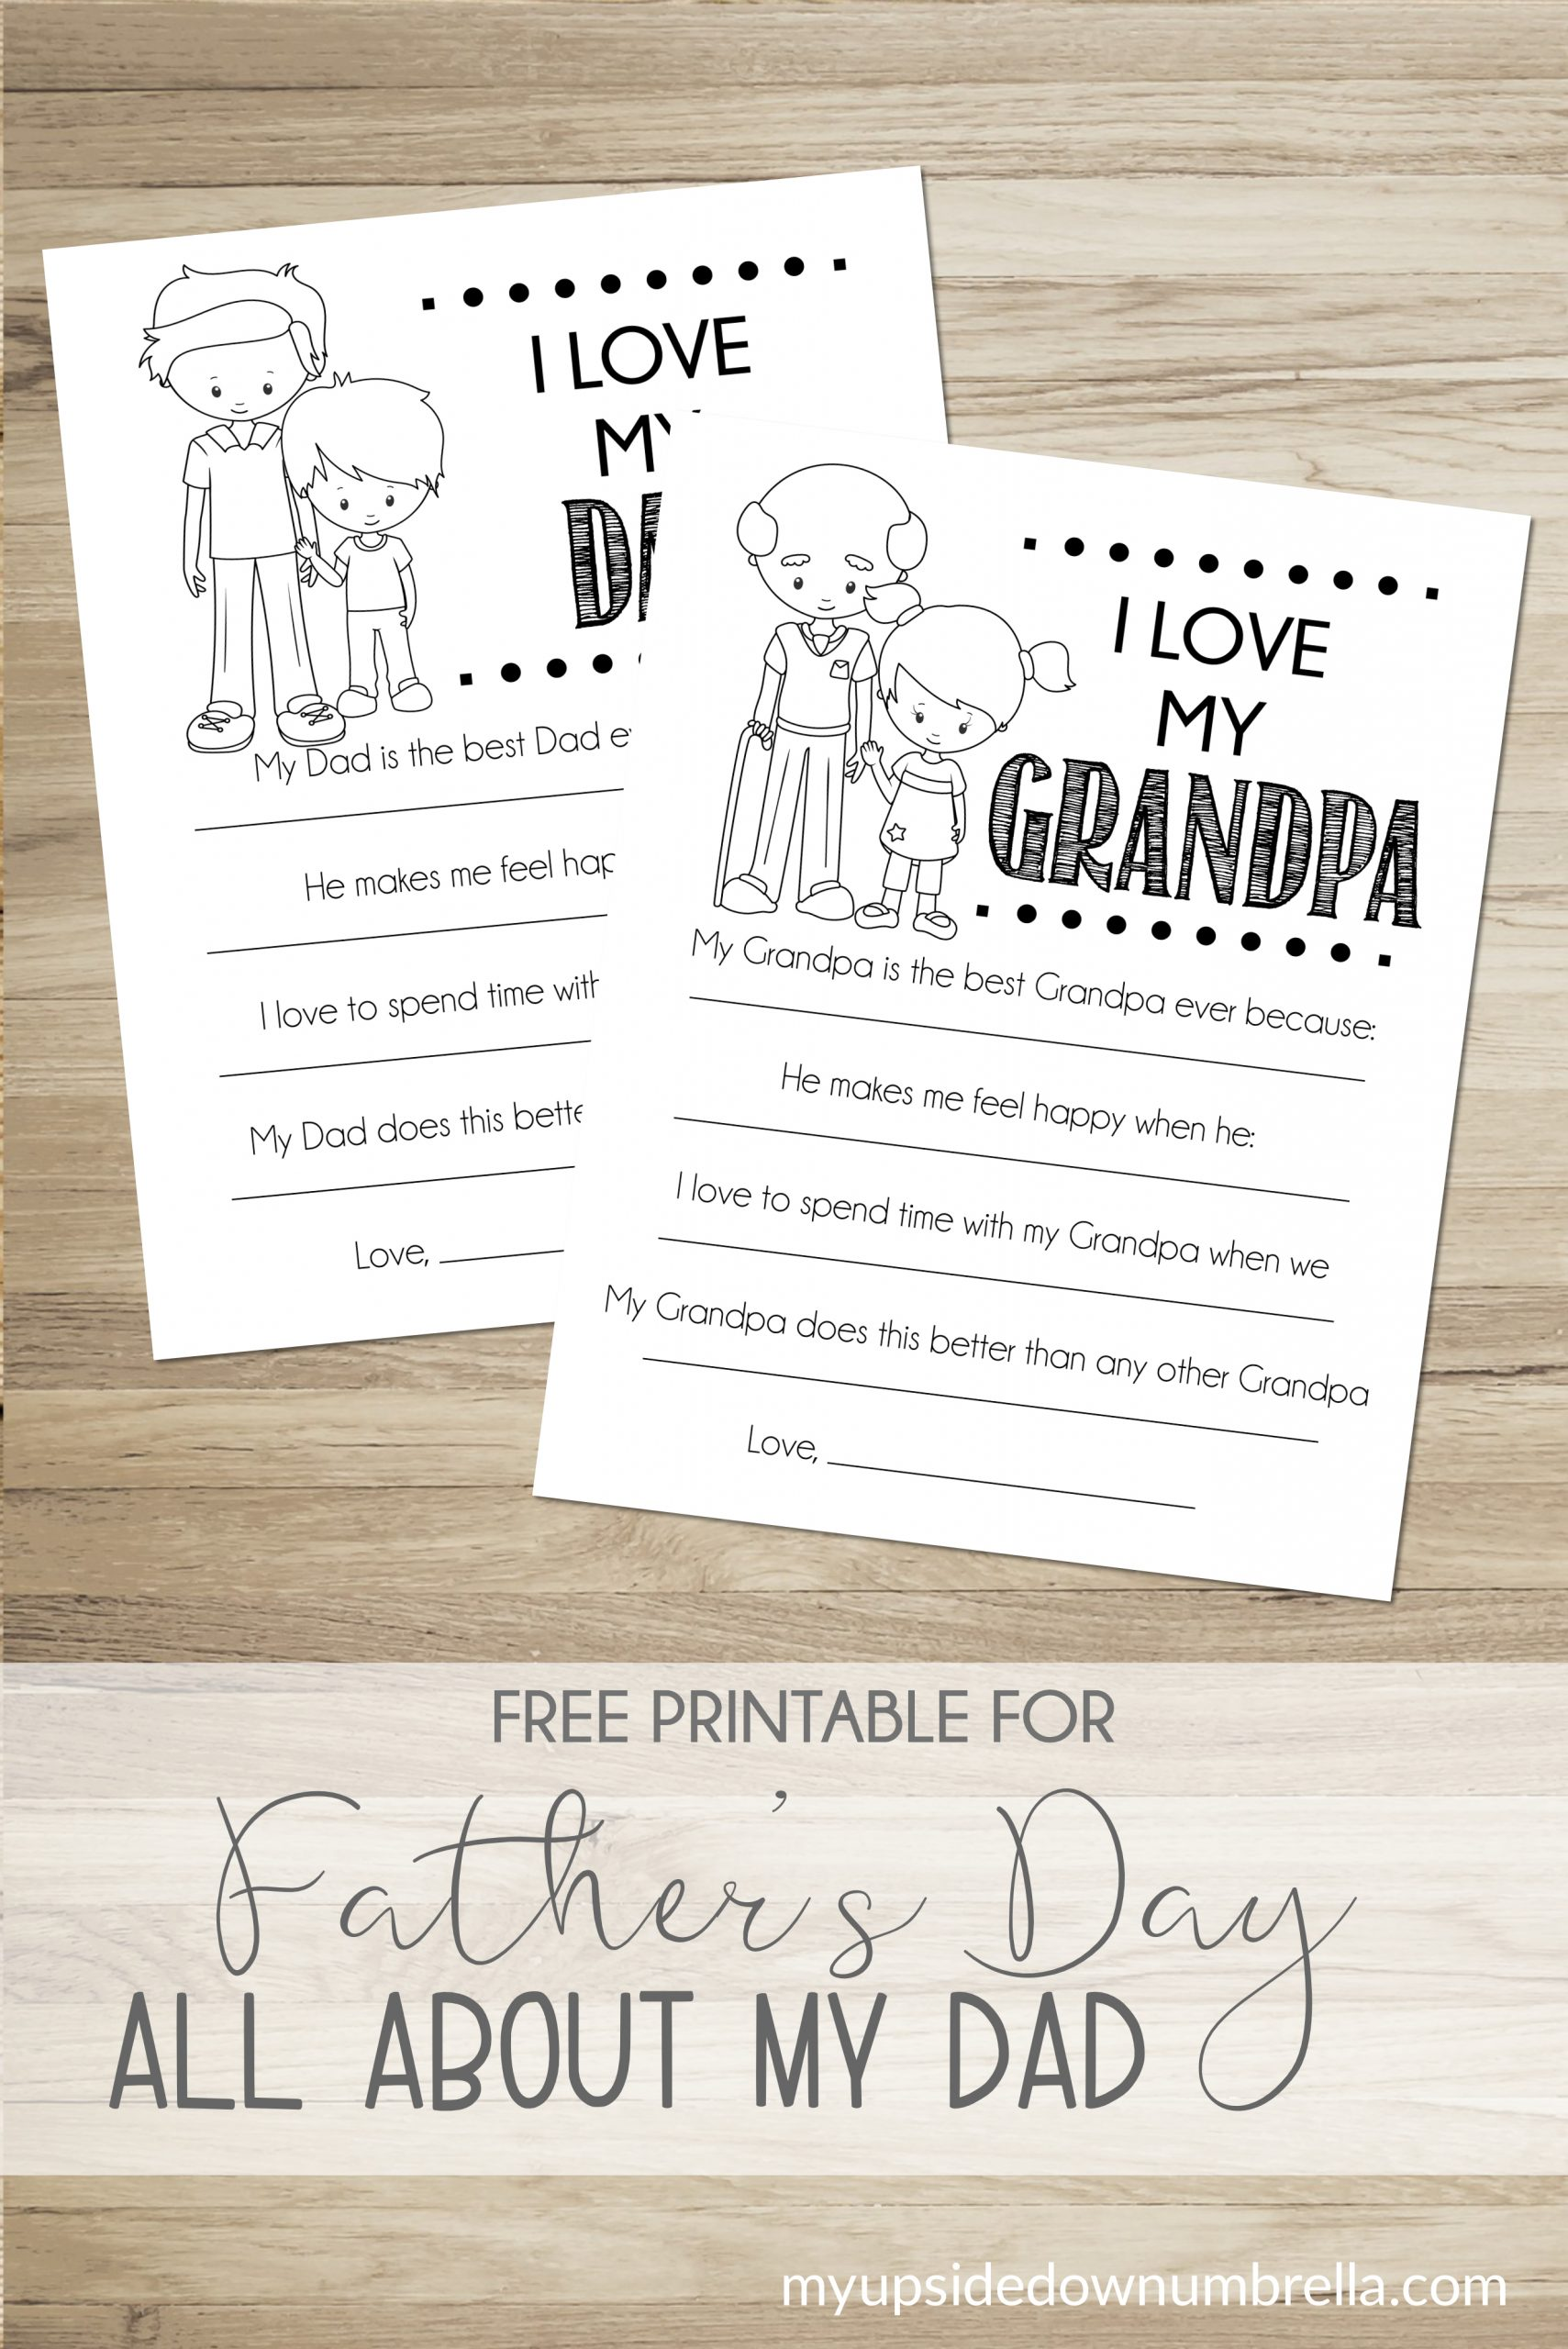 all about my dad, I love my grandpa fathers day free printable